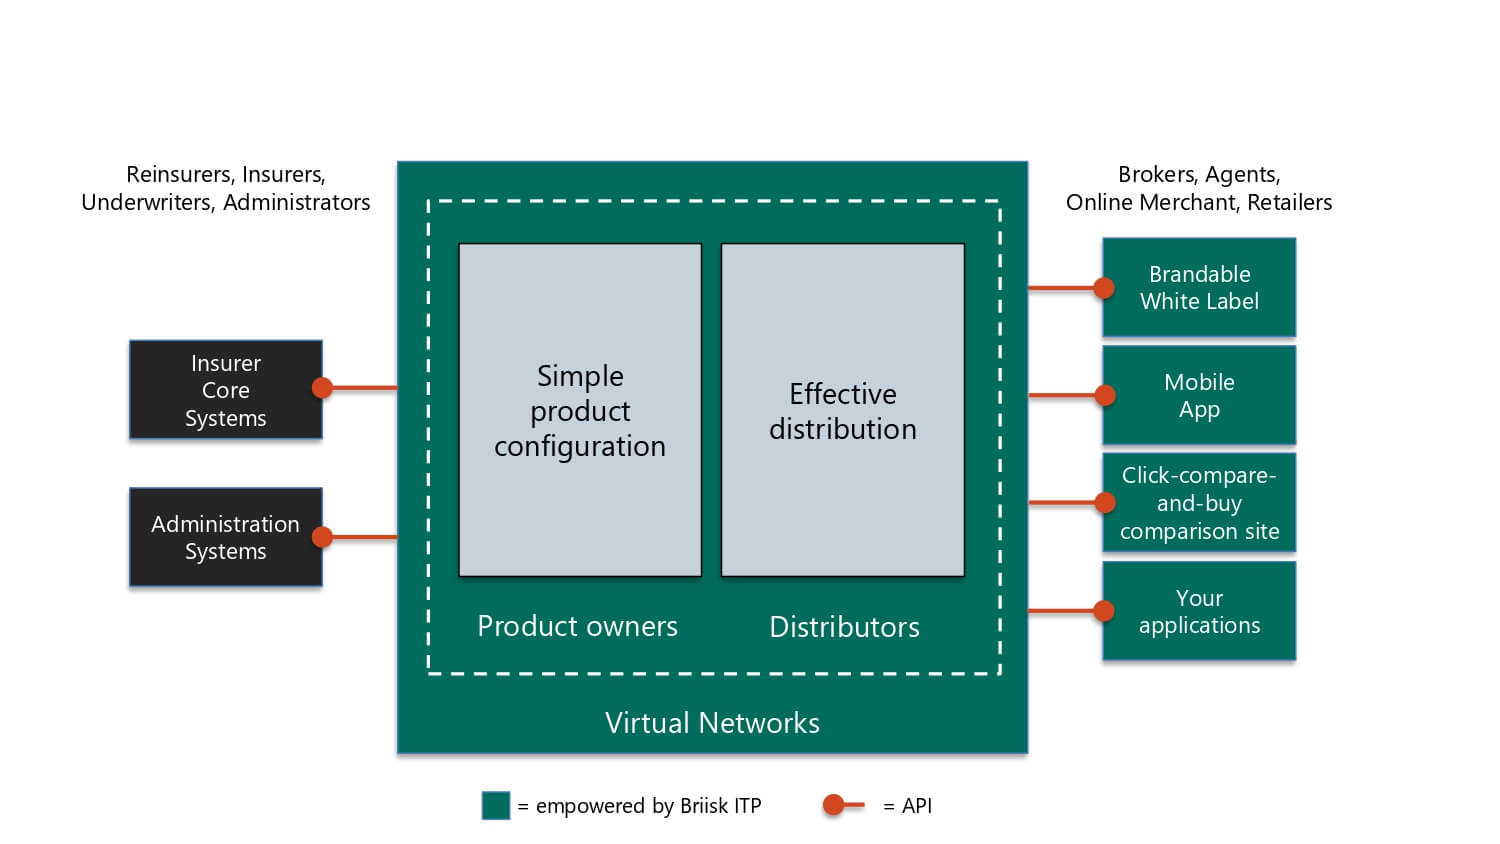 Digital insurance distribution and product configuration via Briisk ITP